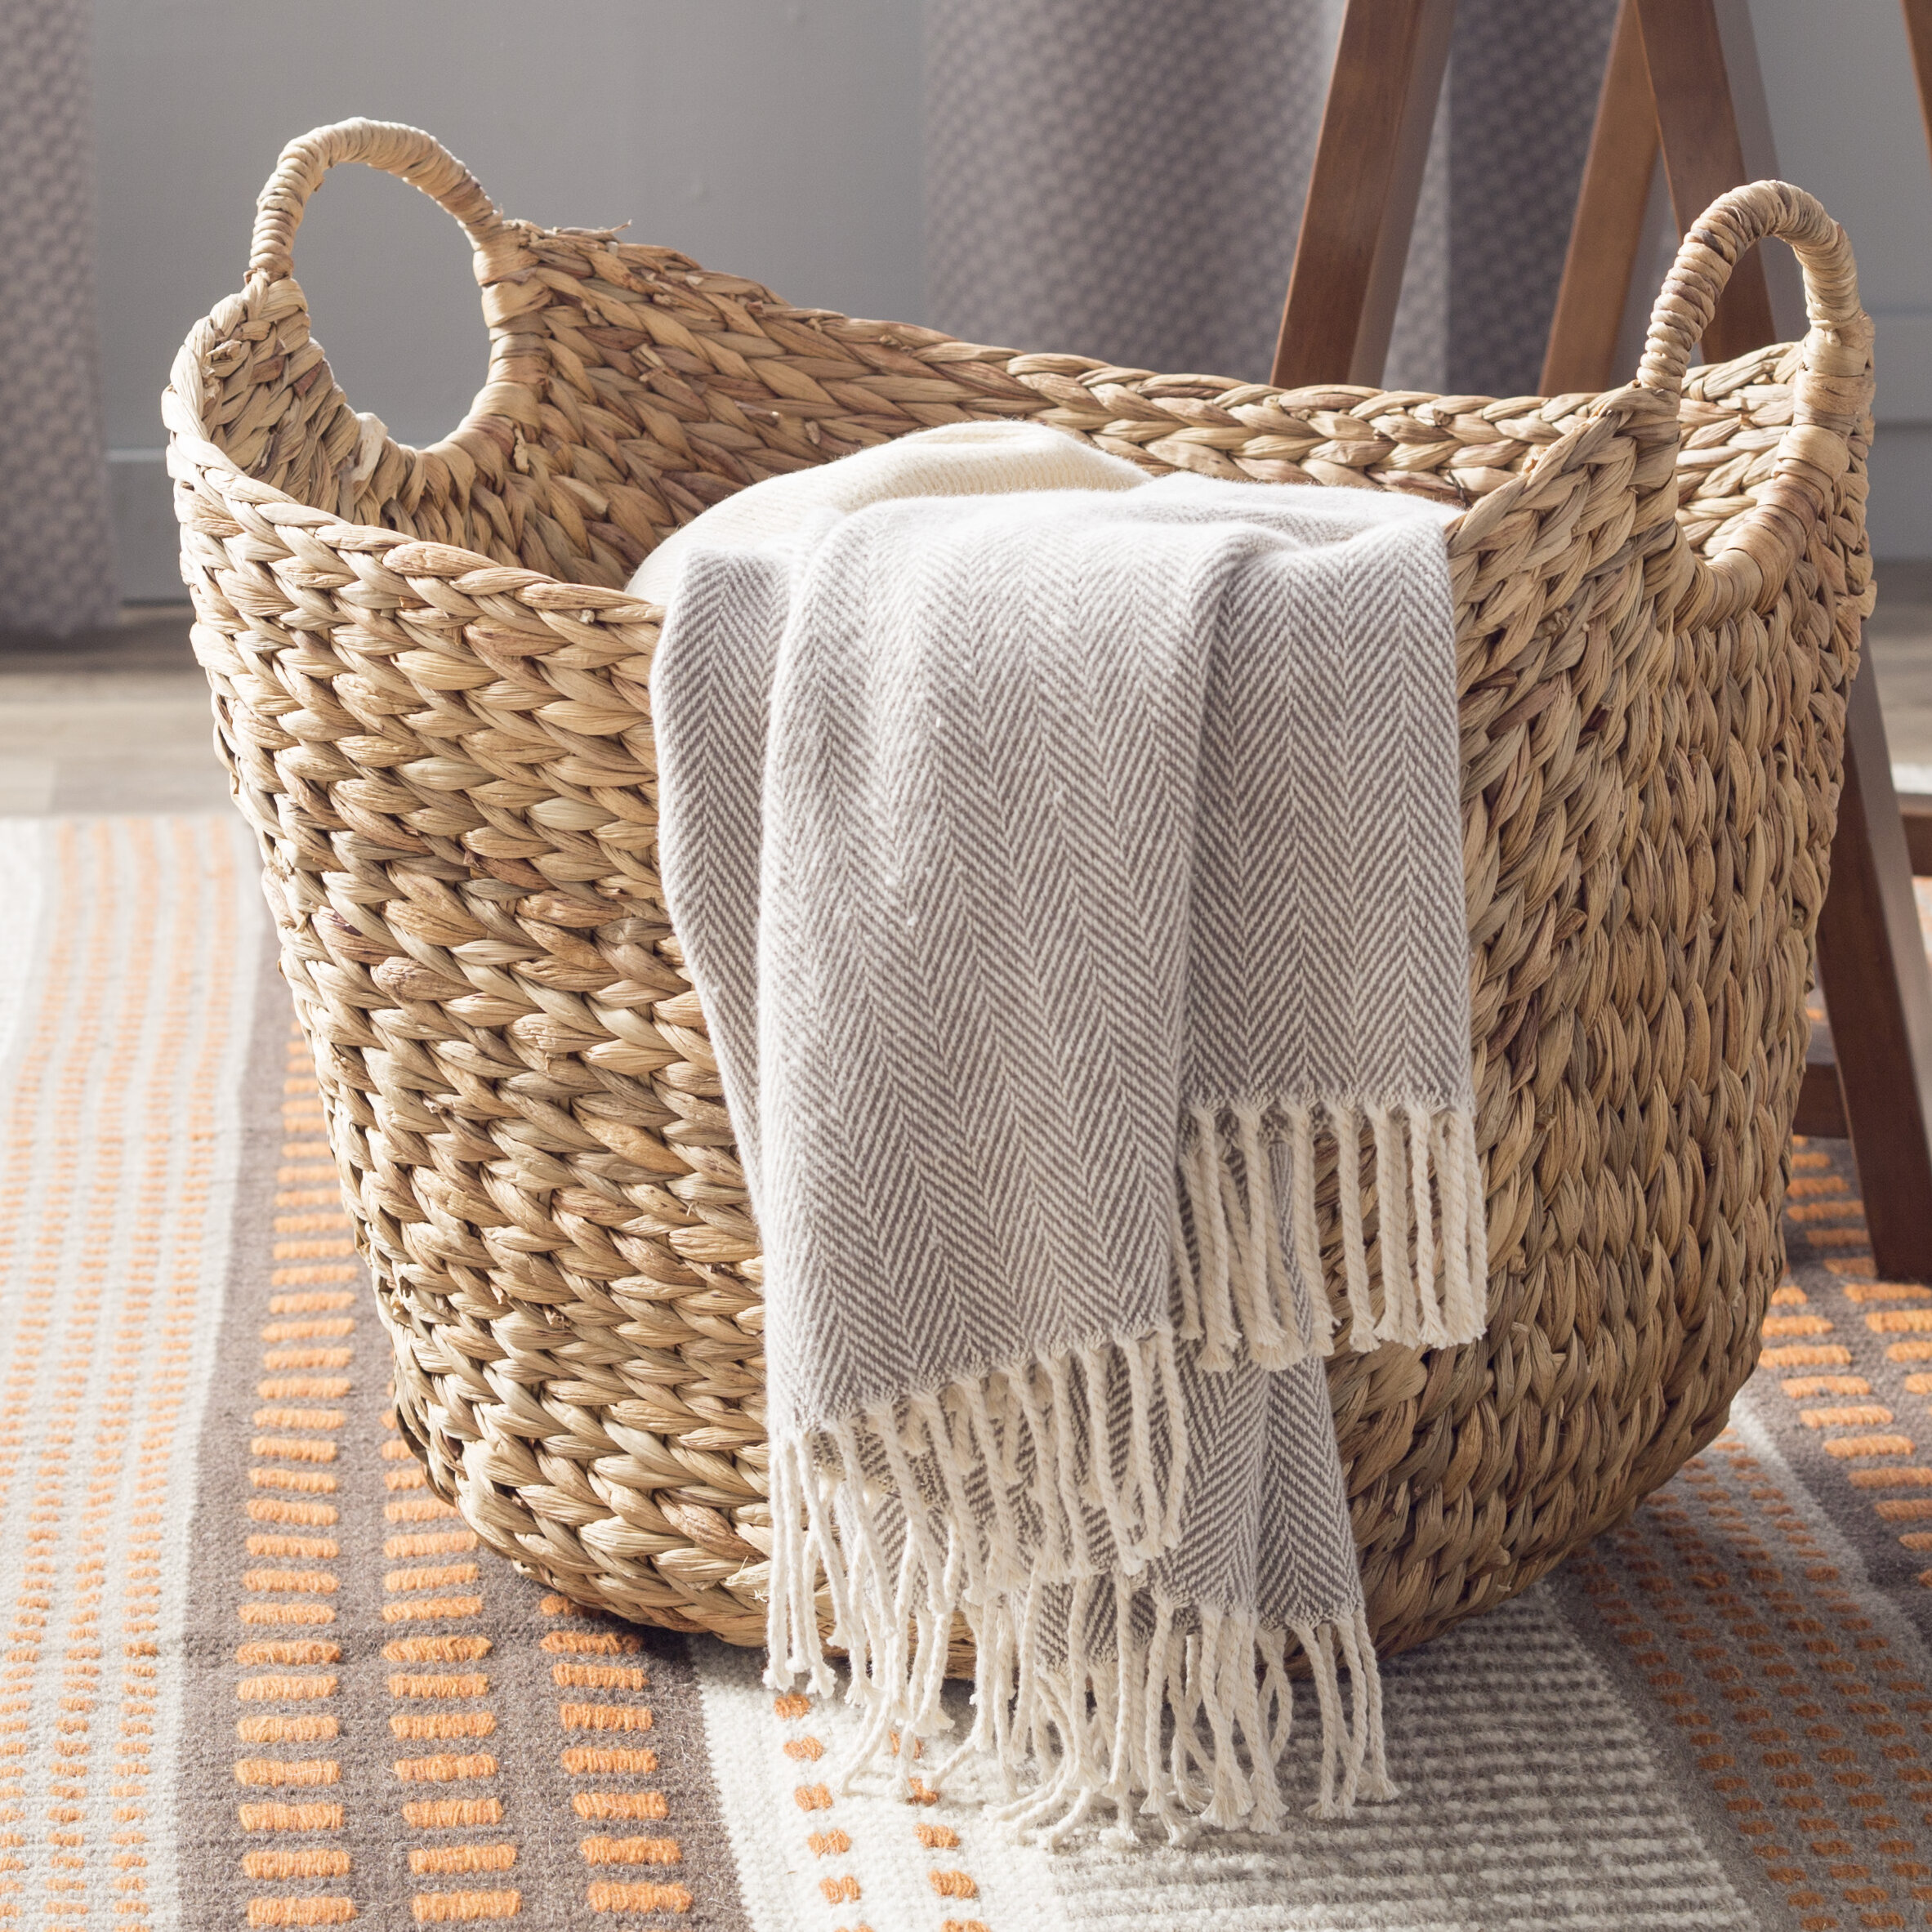 The Twillery Co Tall Water Hyacinth Wicker Basket With Handles